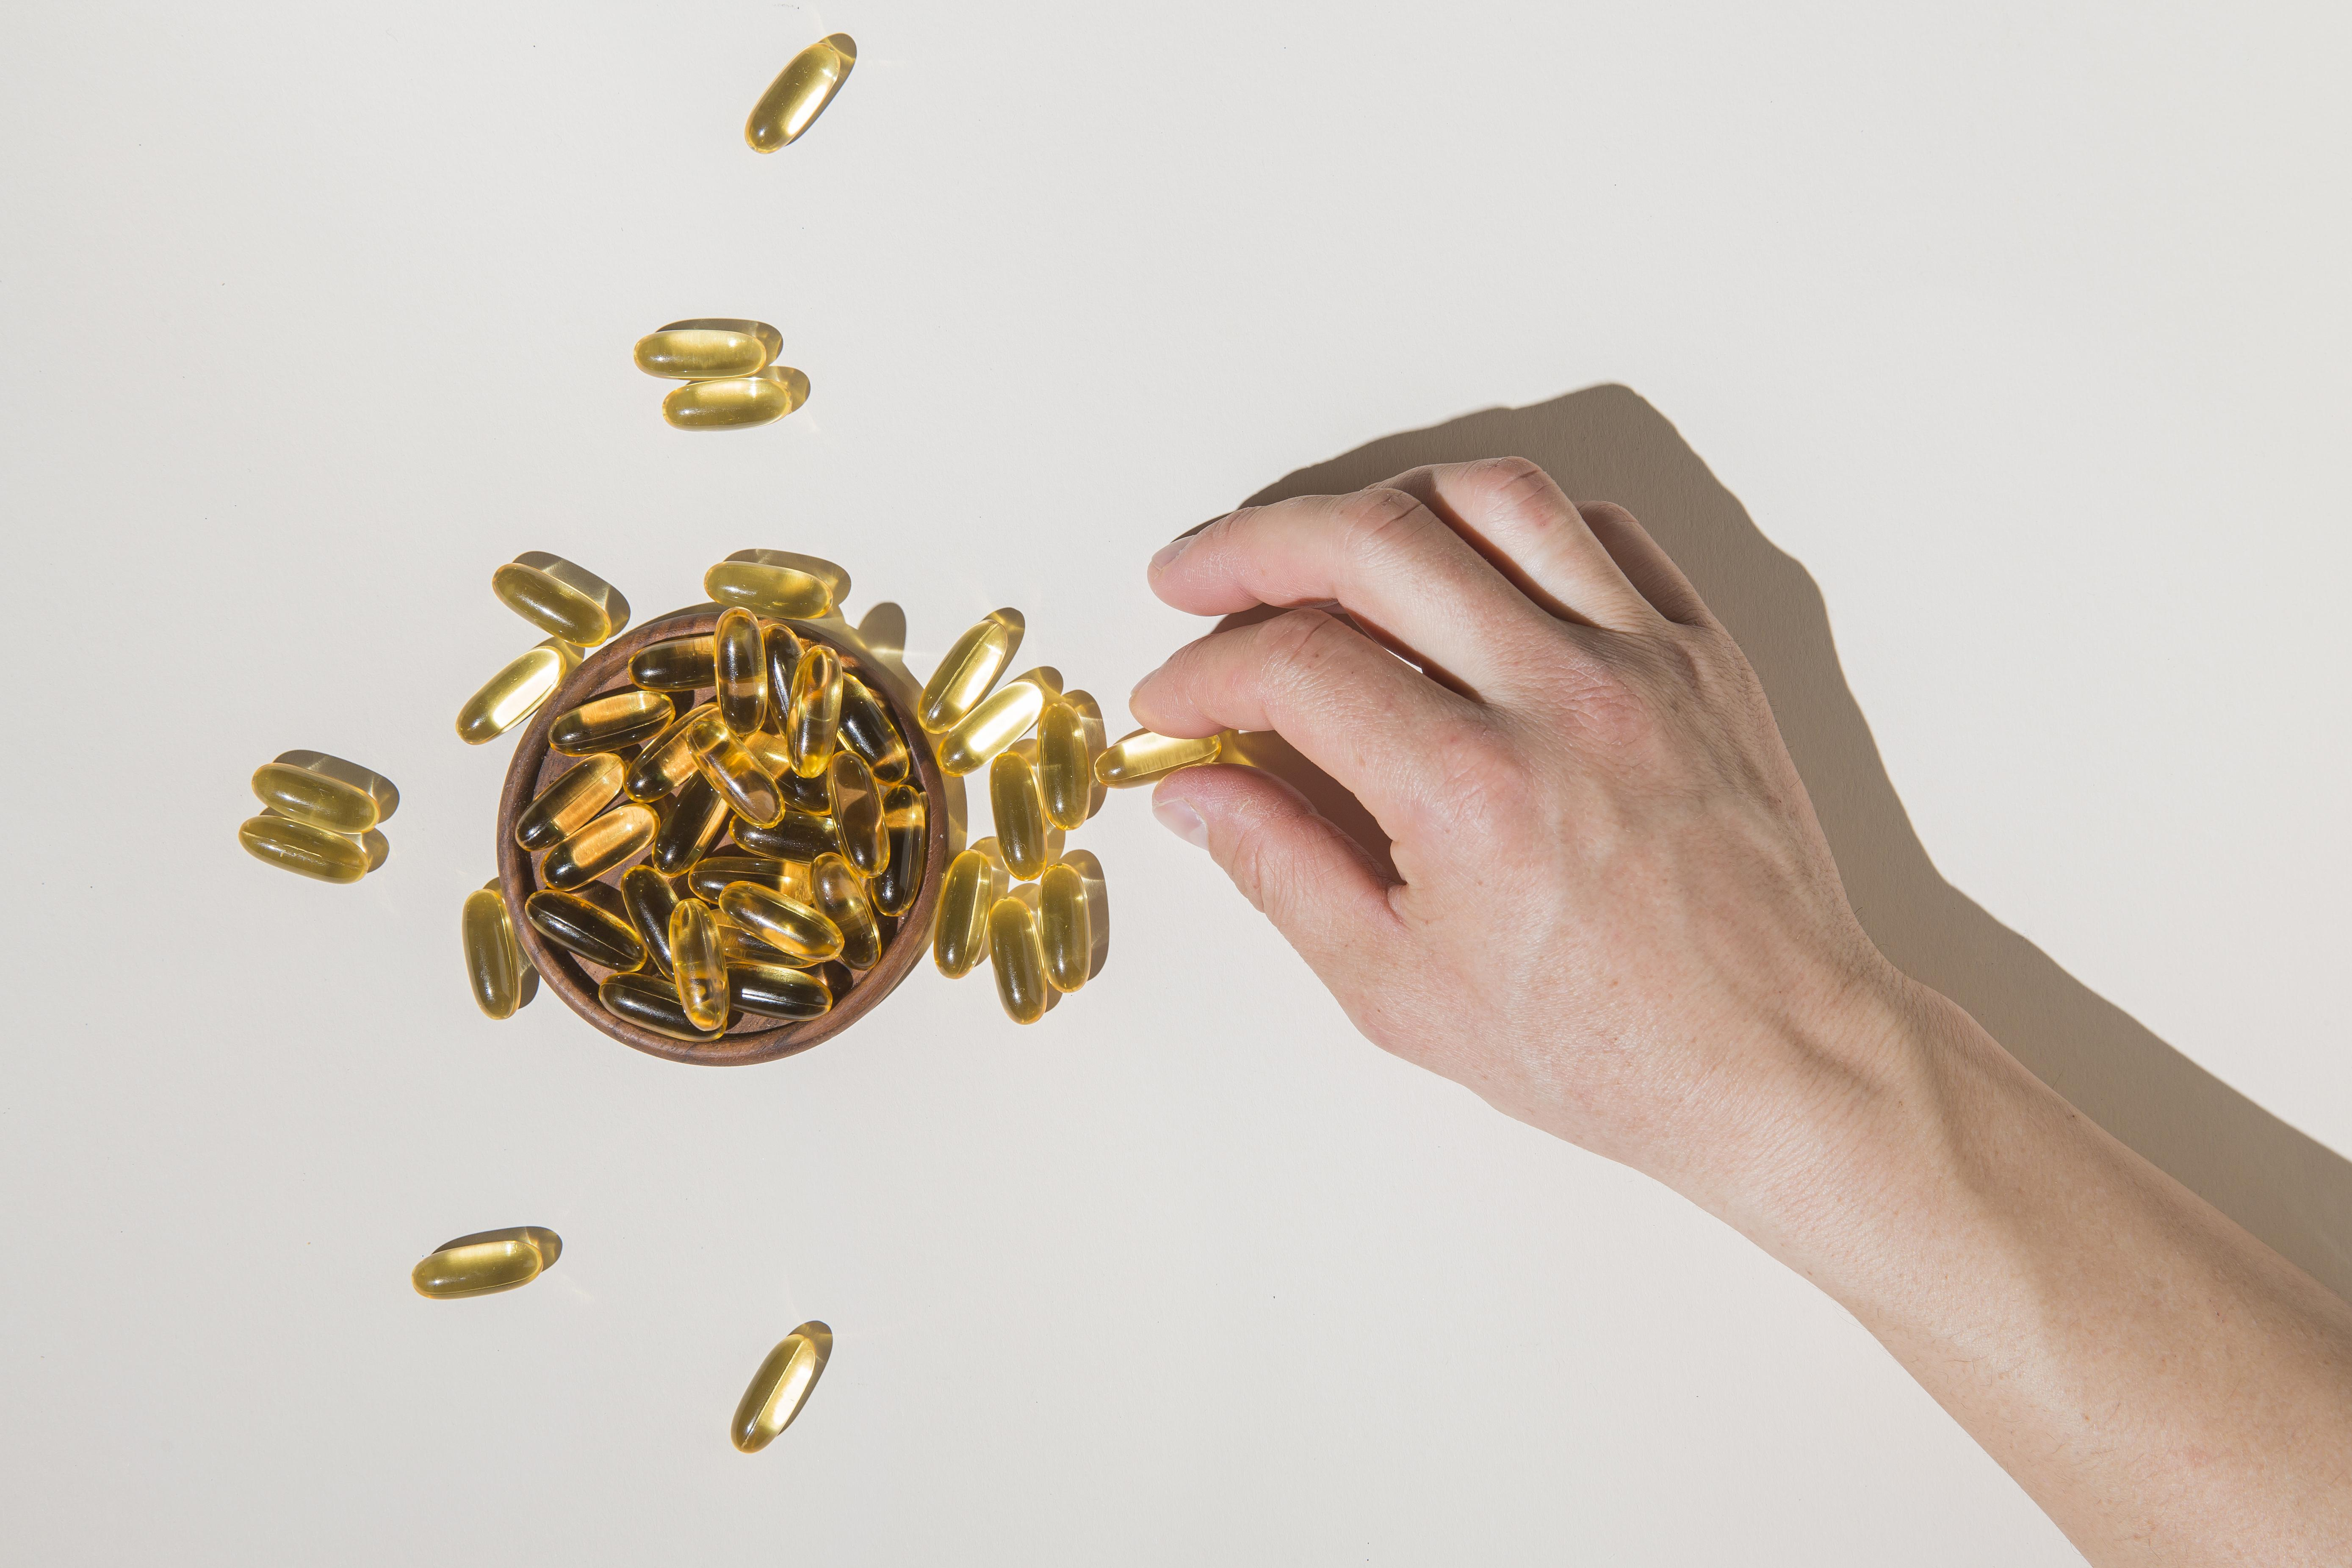 A man touching omega 3 capsule with hands